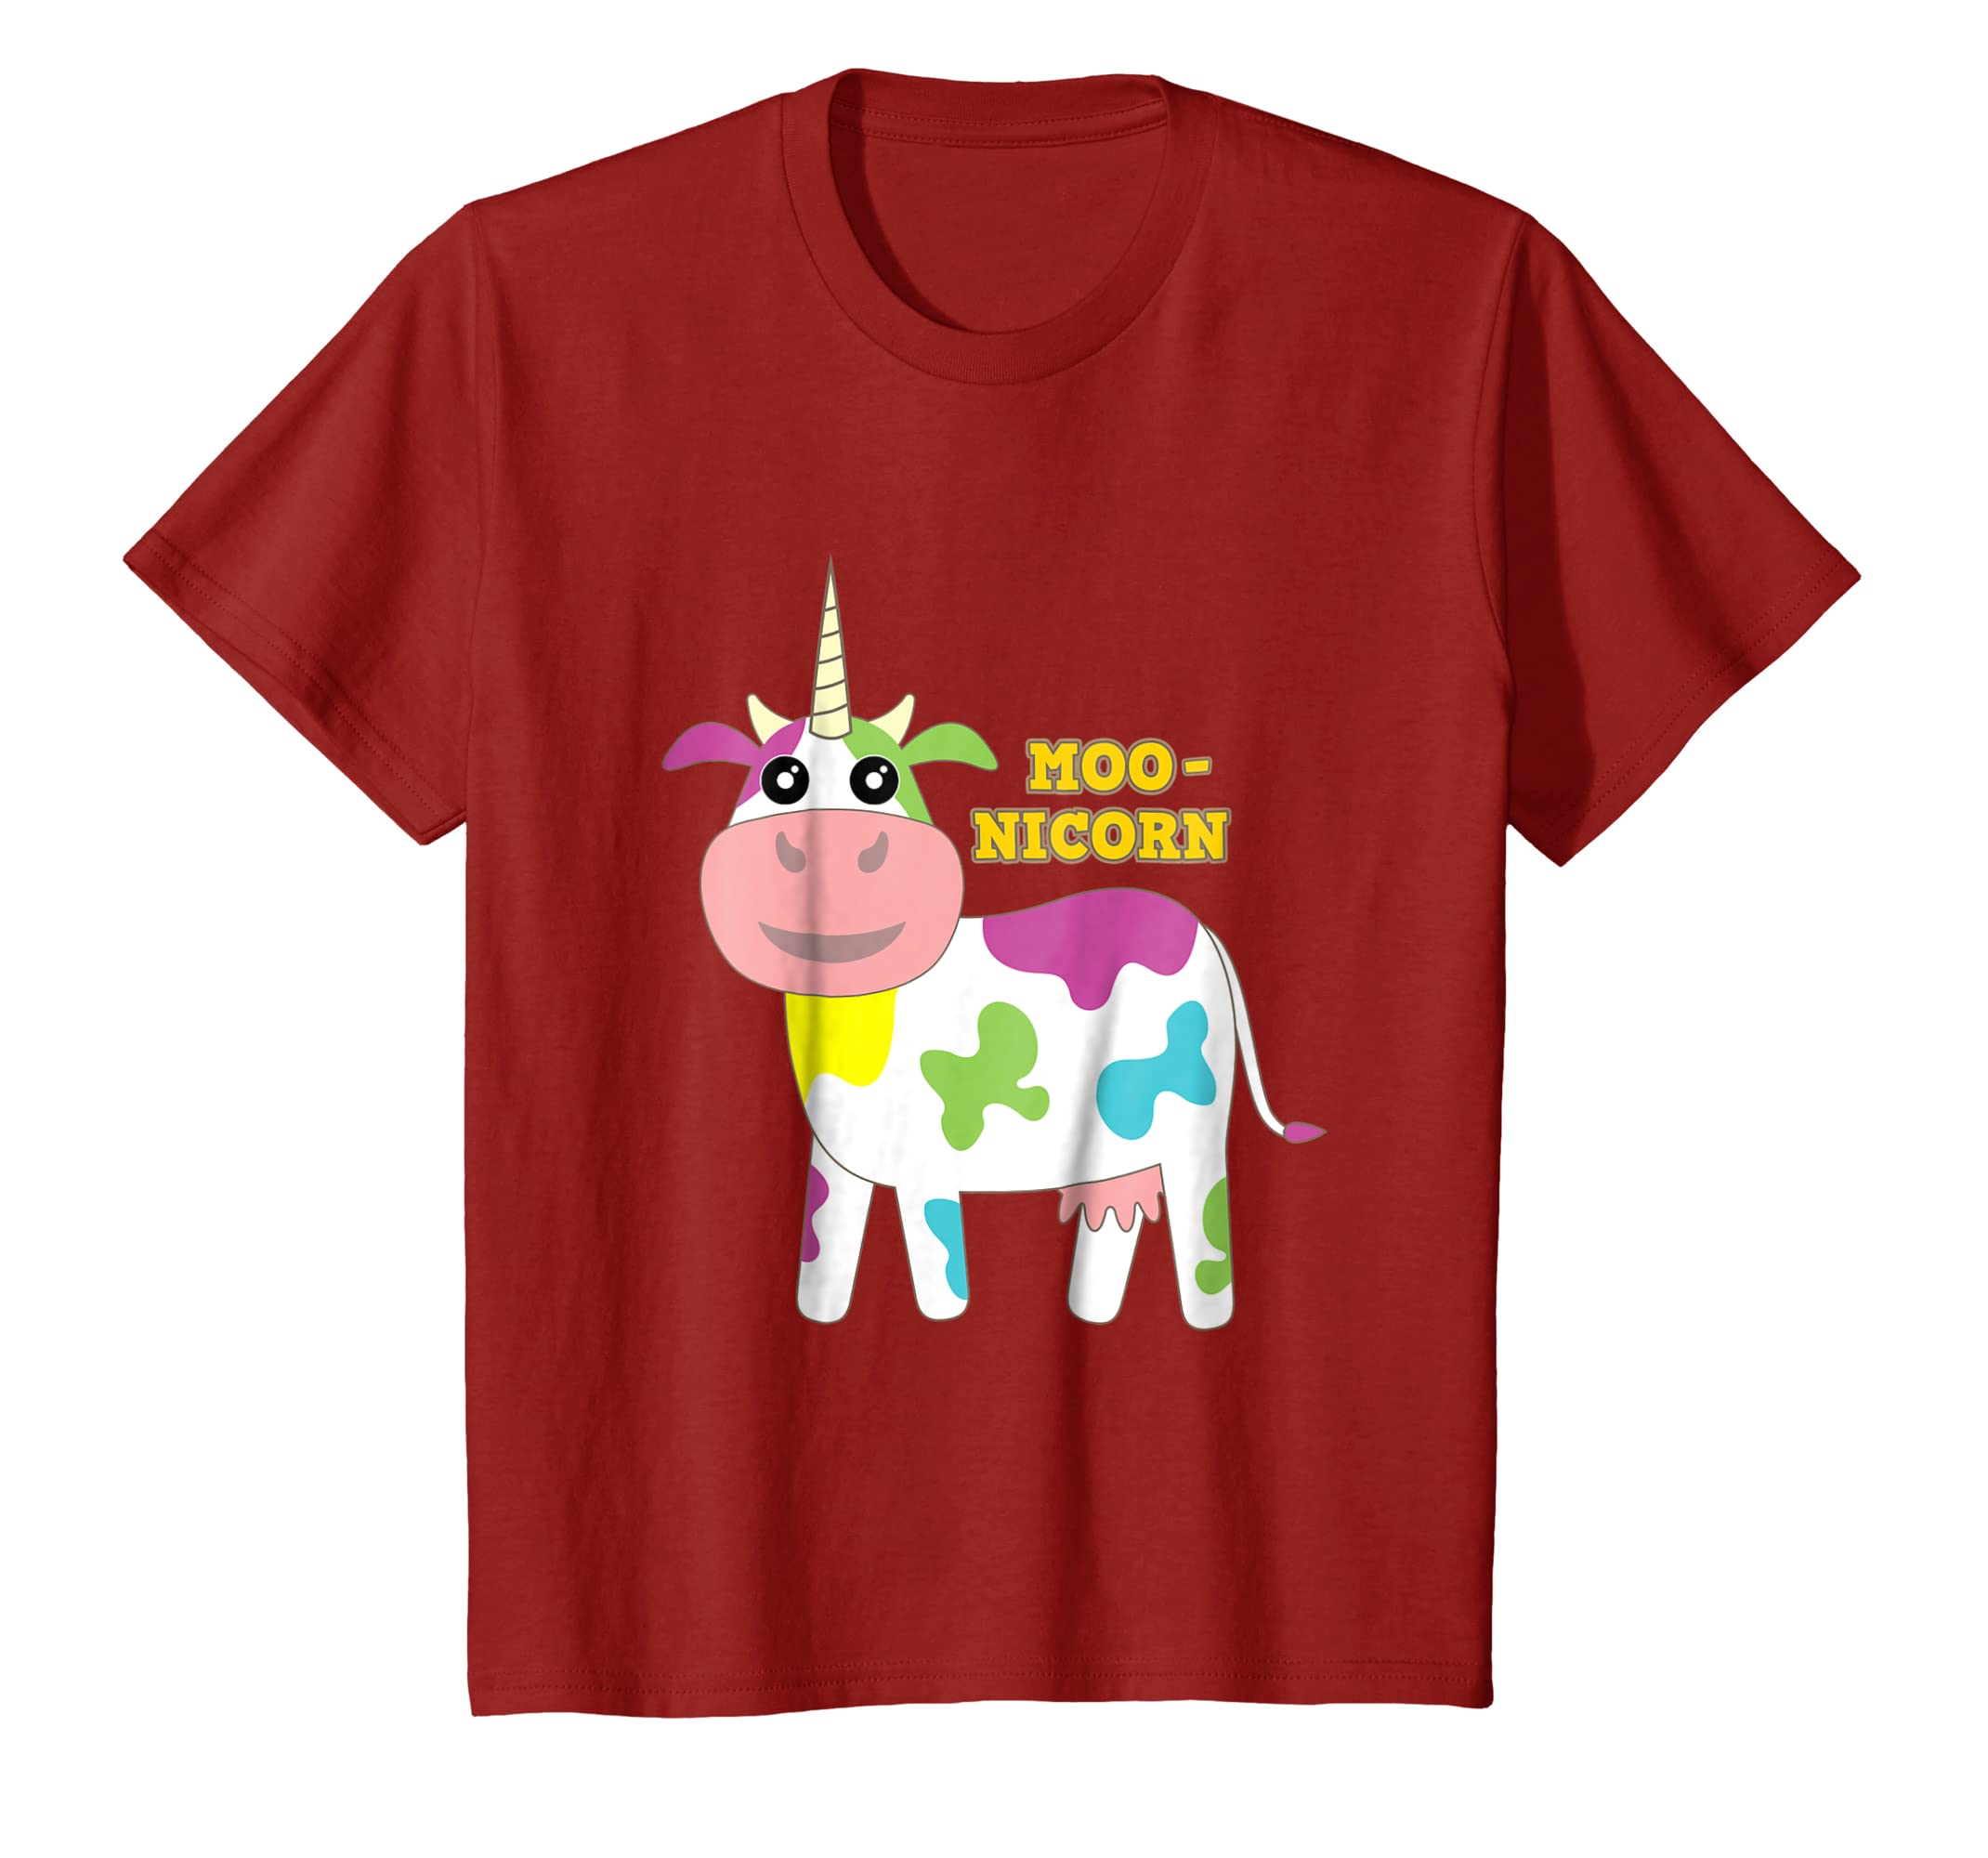 58765afc7798 Amazon.com: Moonicorn Funny Cow Unicorn T-Shirt Gift for Kids and ...